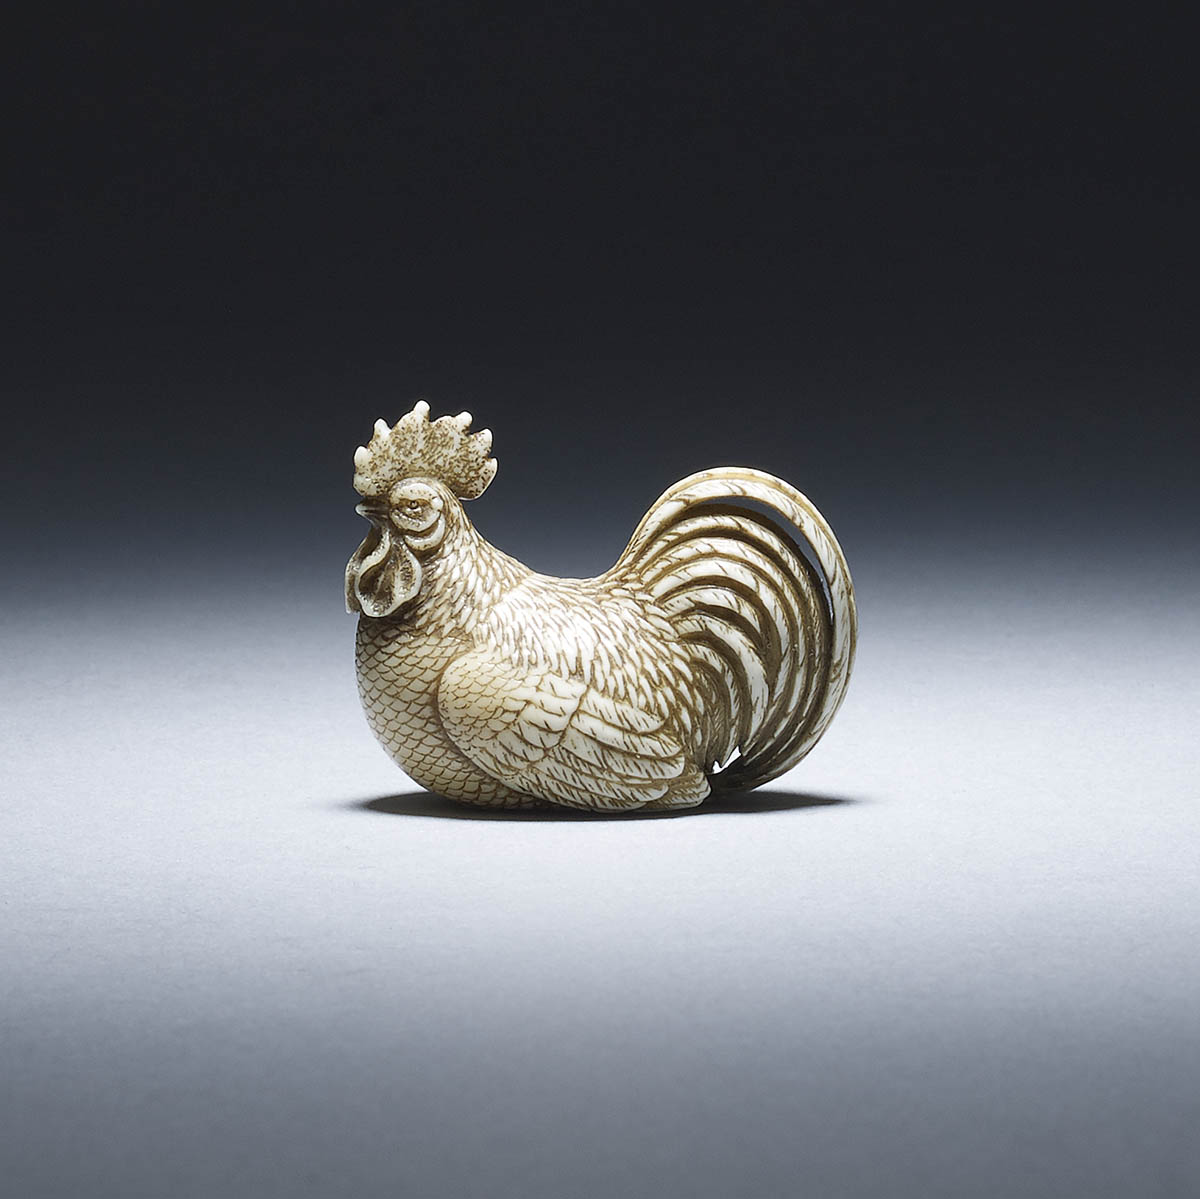 Ryumei Ivory netsuke of a cockerel